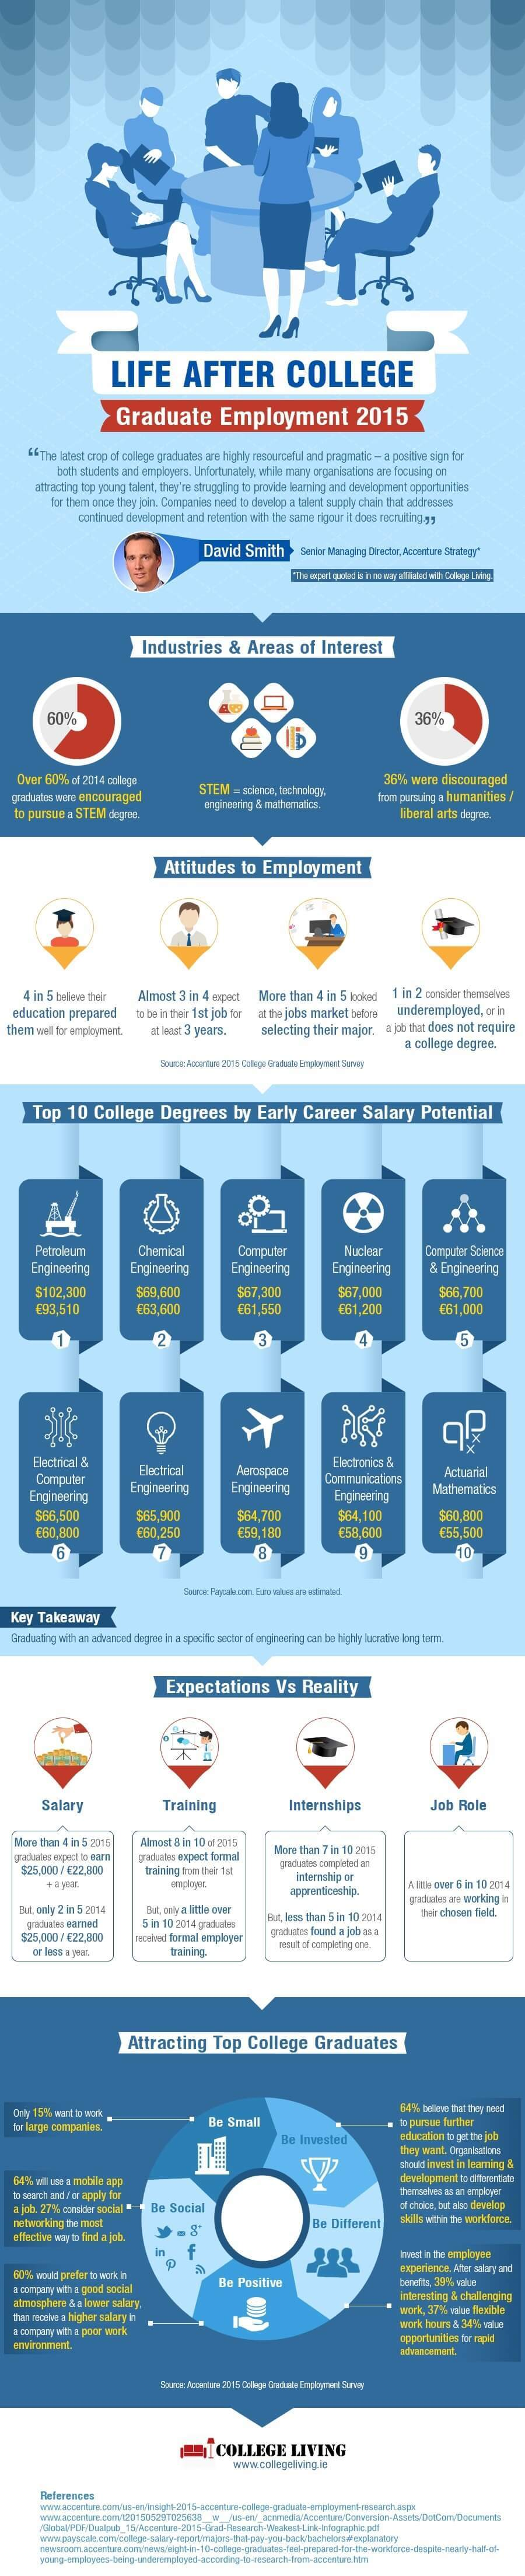 2015 Graduate Employment Infographic